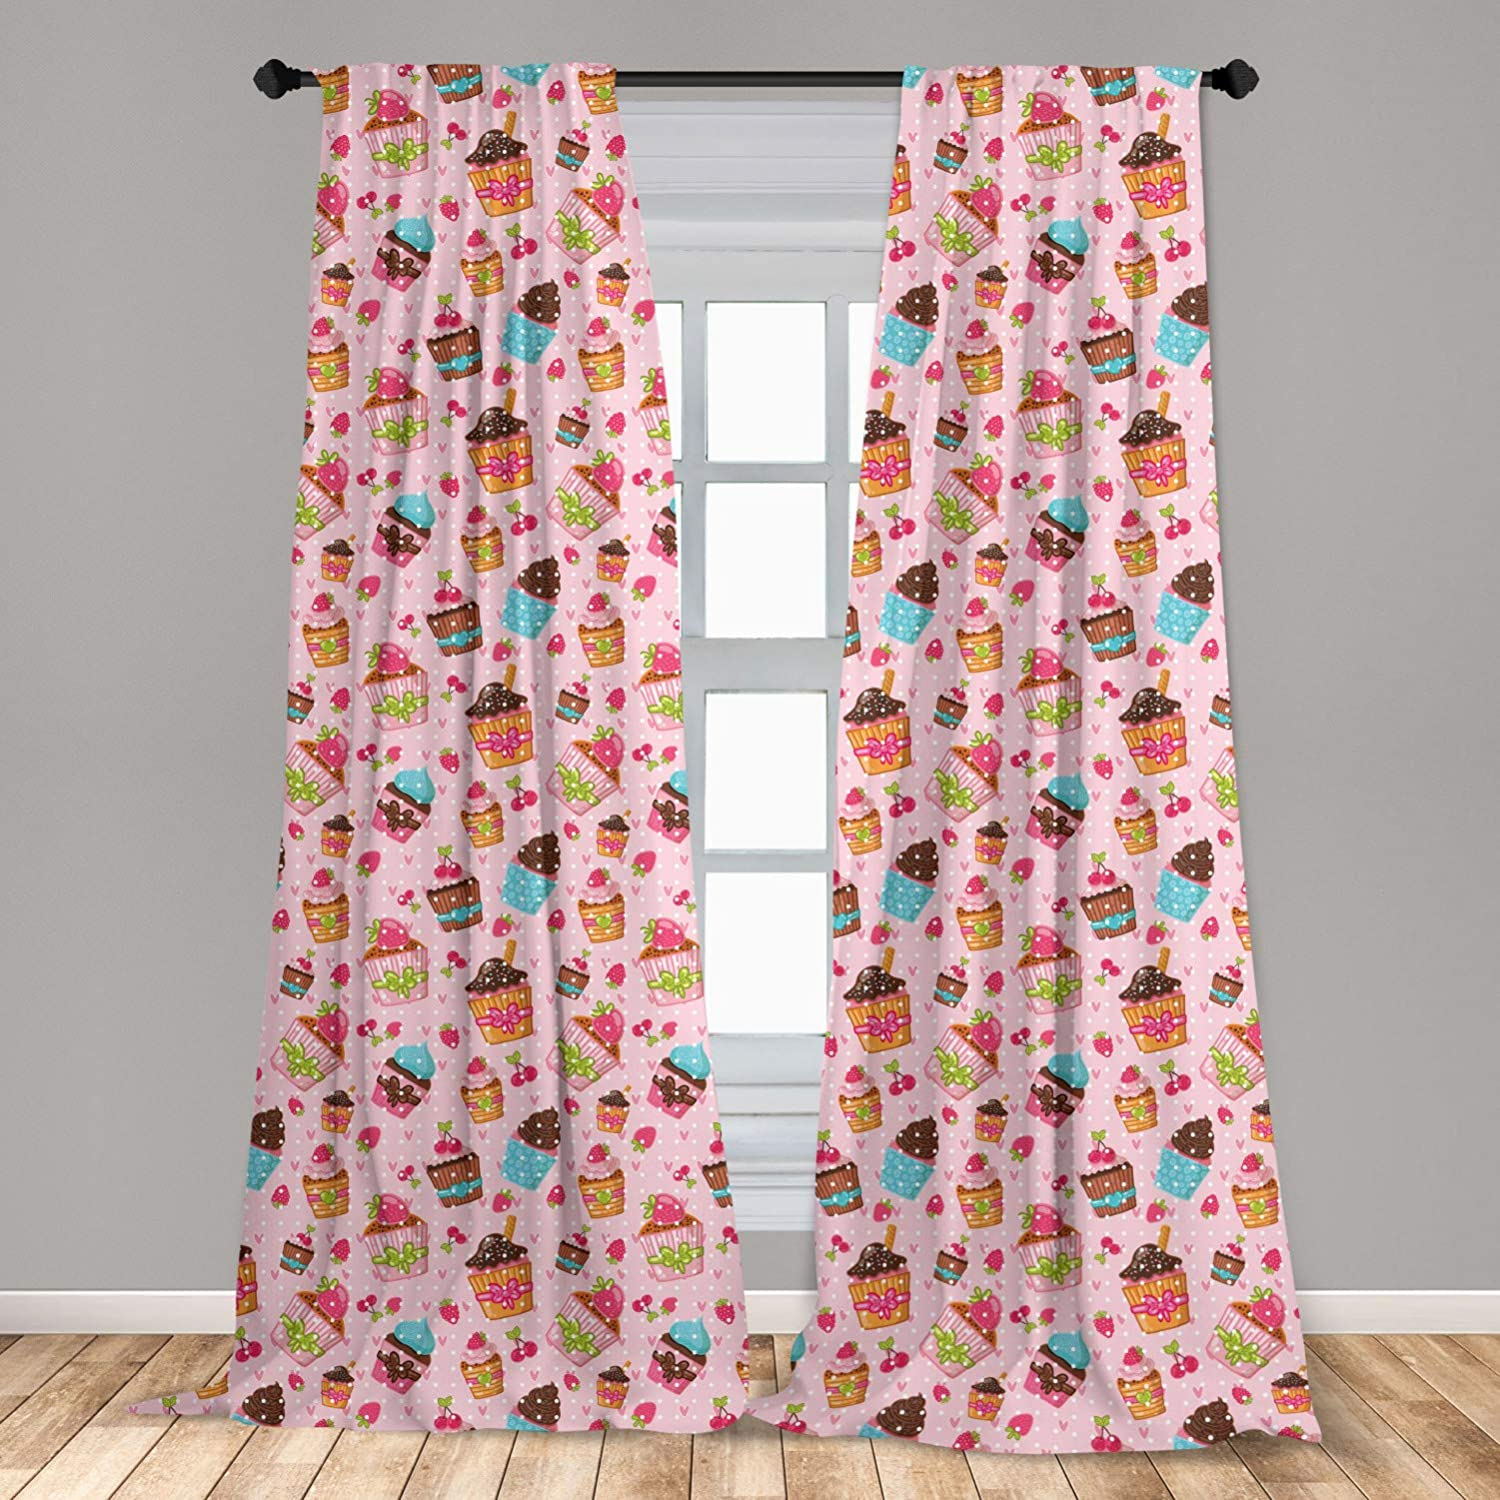 Ambesonne Pink Curtains 2 Panel Set, Kitchen Cupcakes Muffins Strawberries and Cherries Food Eating Sweets Print, Lightweight Window Treatment Living Room Bedroom Decor, 56